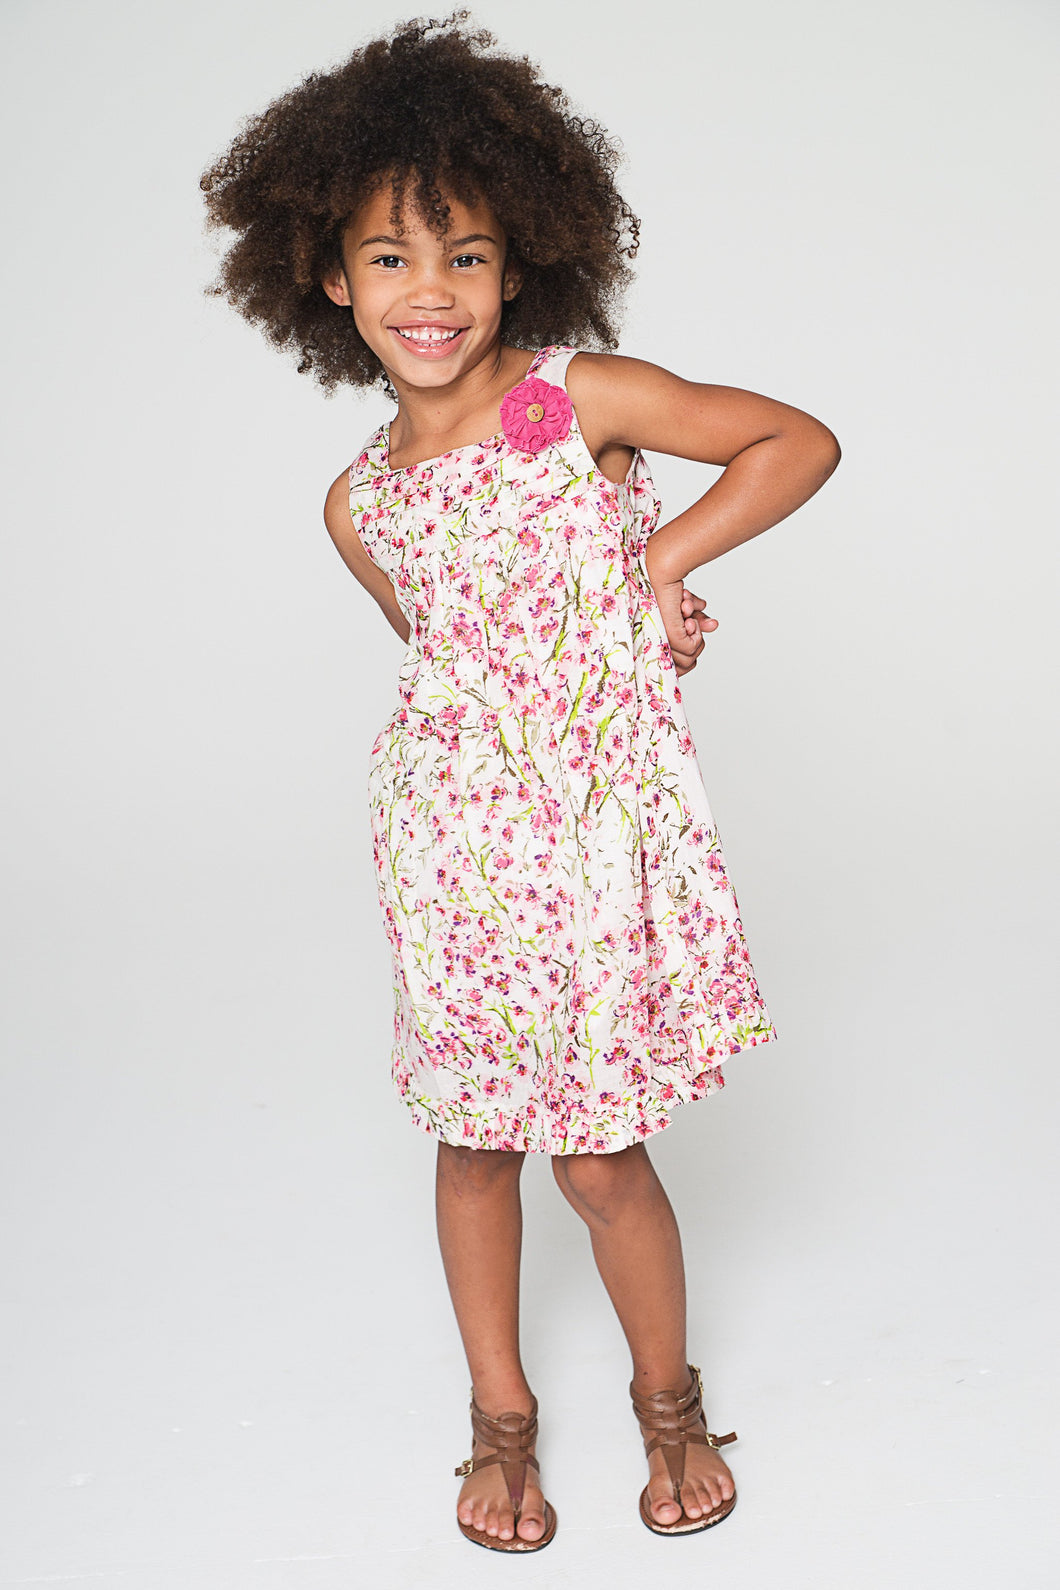 Cherry Blossom Inspired White Dress - Kids Clothing, Dress - Girls Dress, Yo Baby Online - Yo Baby